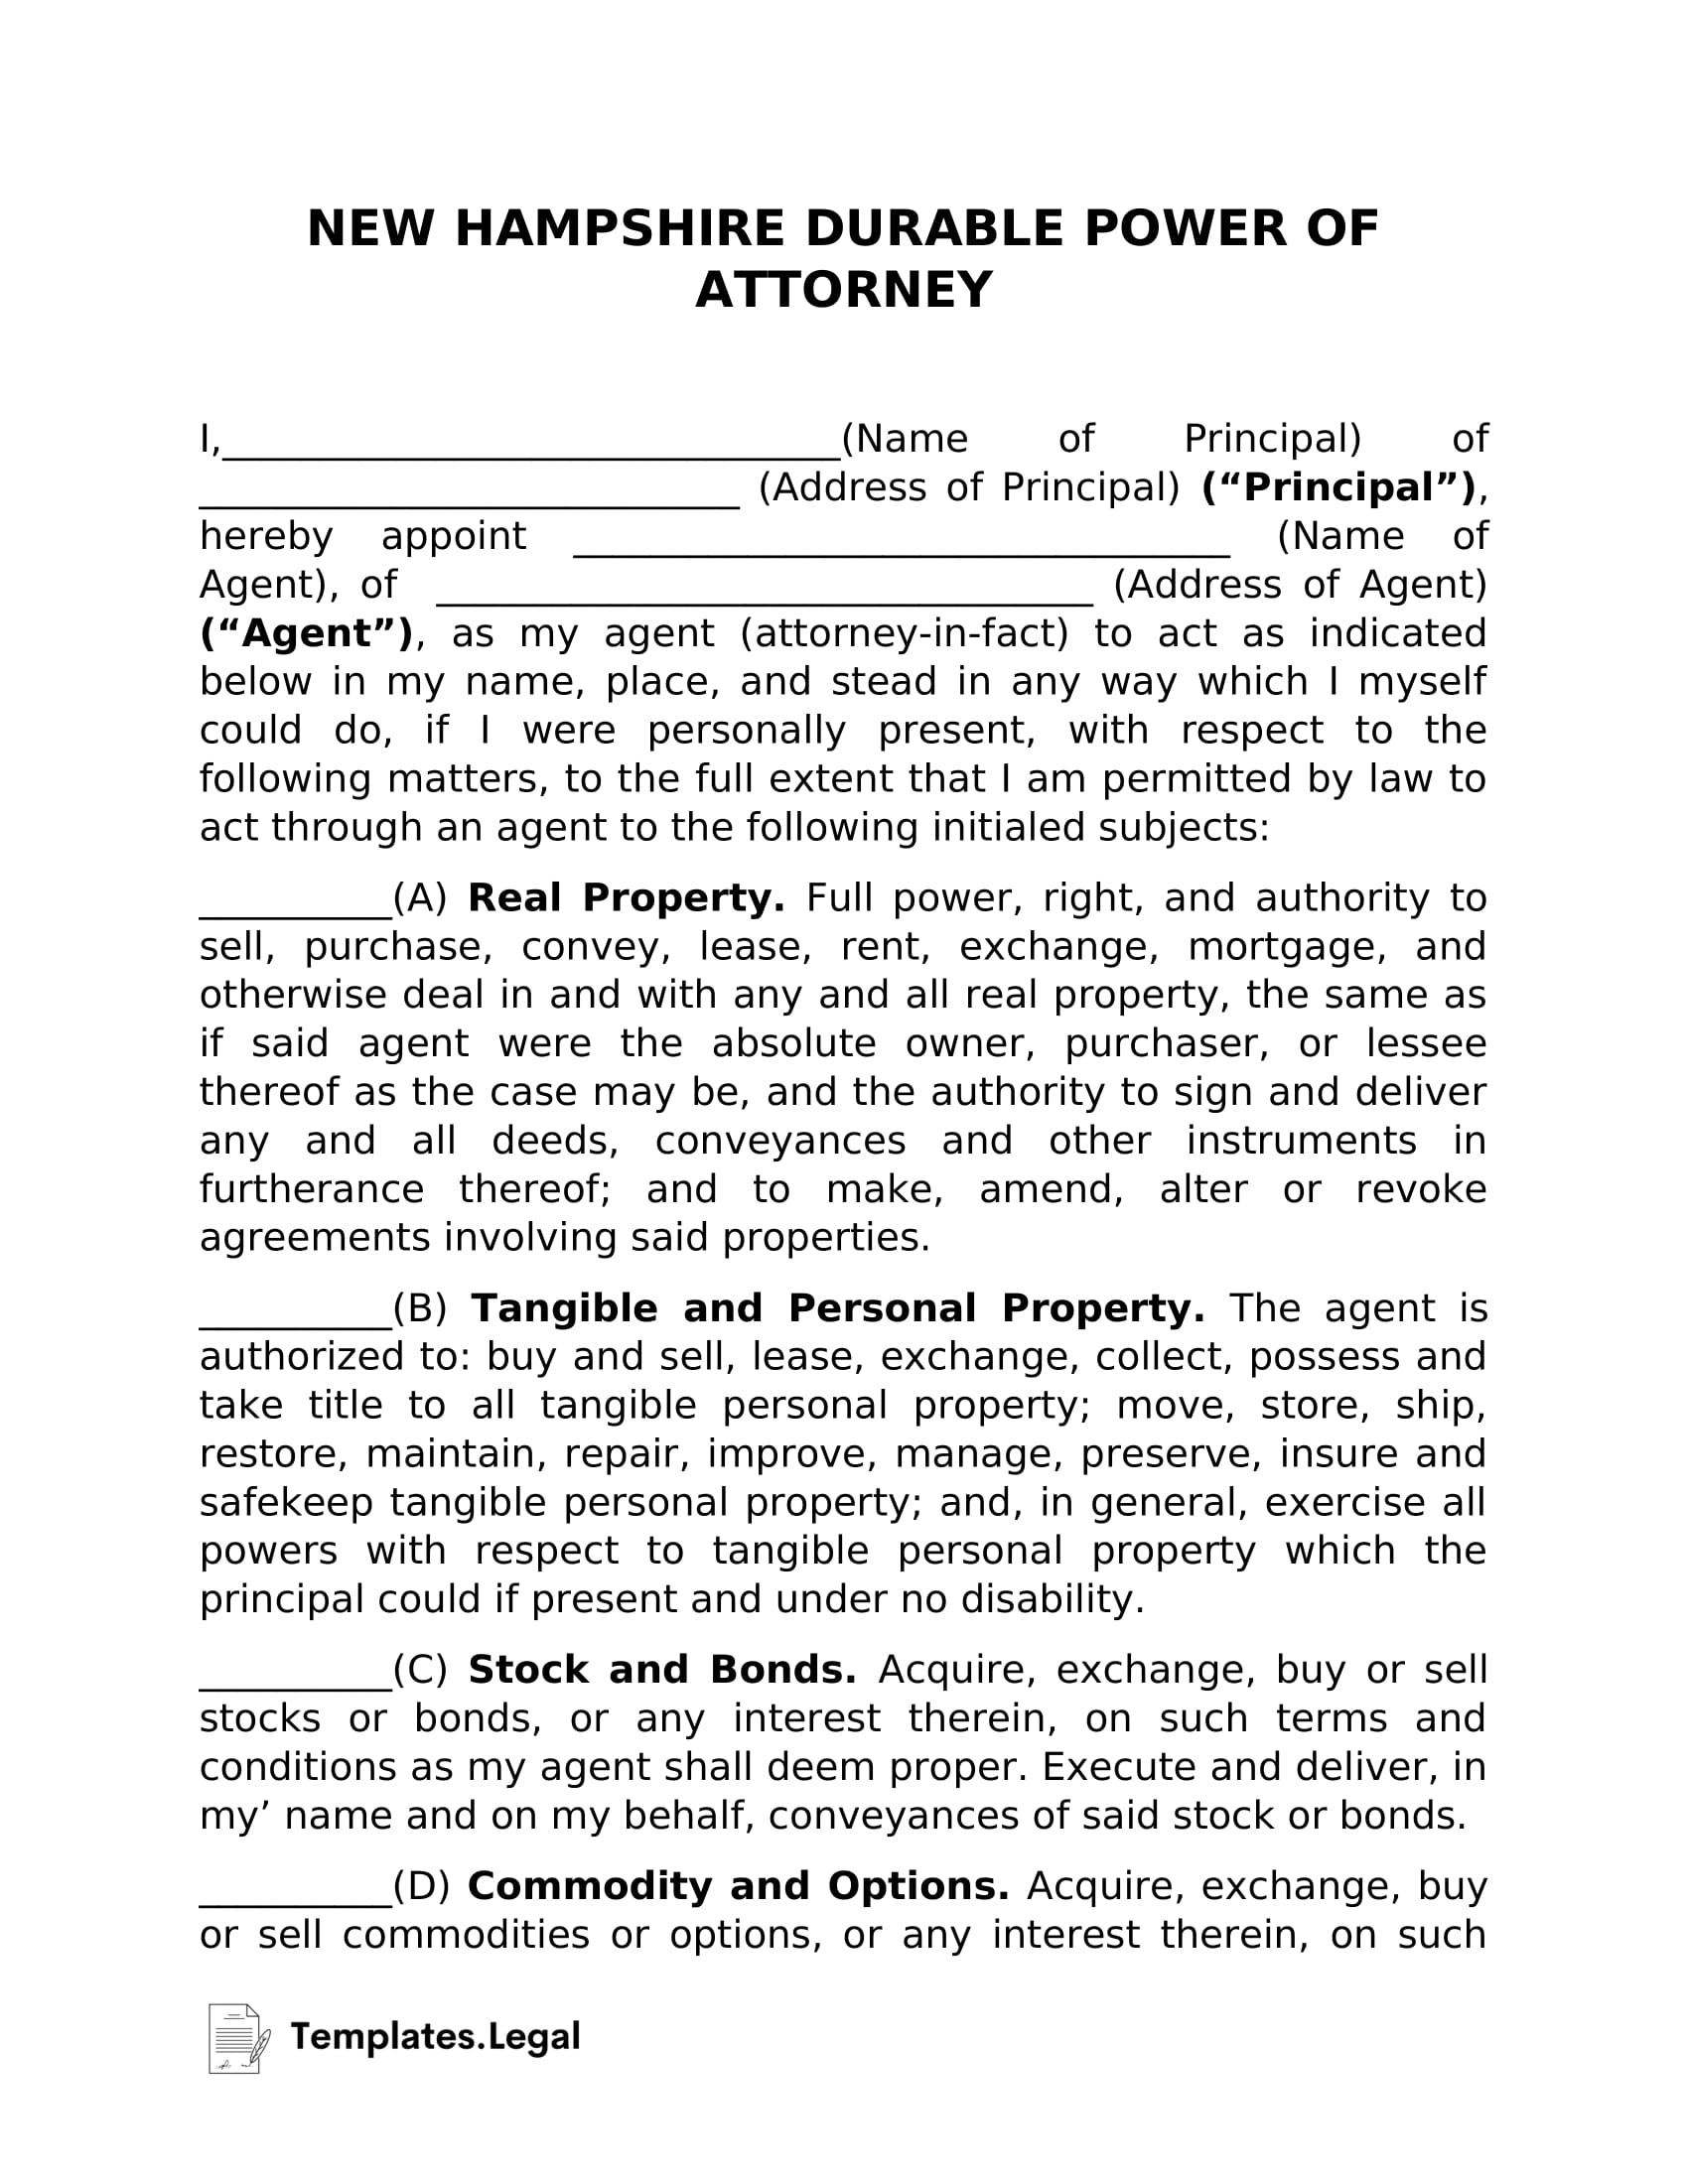 New Hampshire Durable Power of Attorney - Templates.Legal